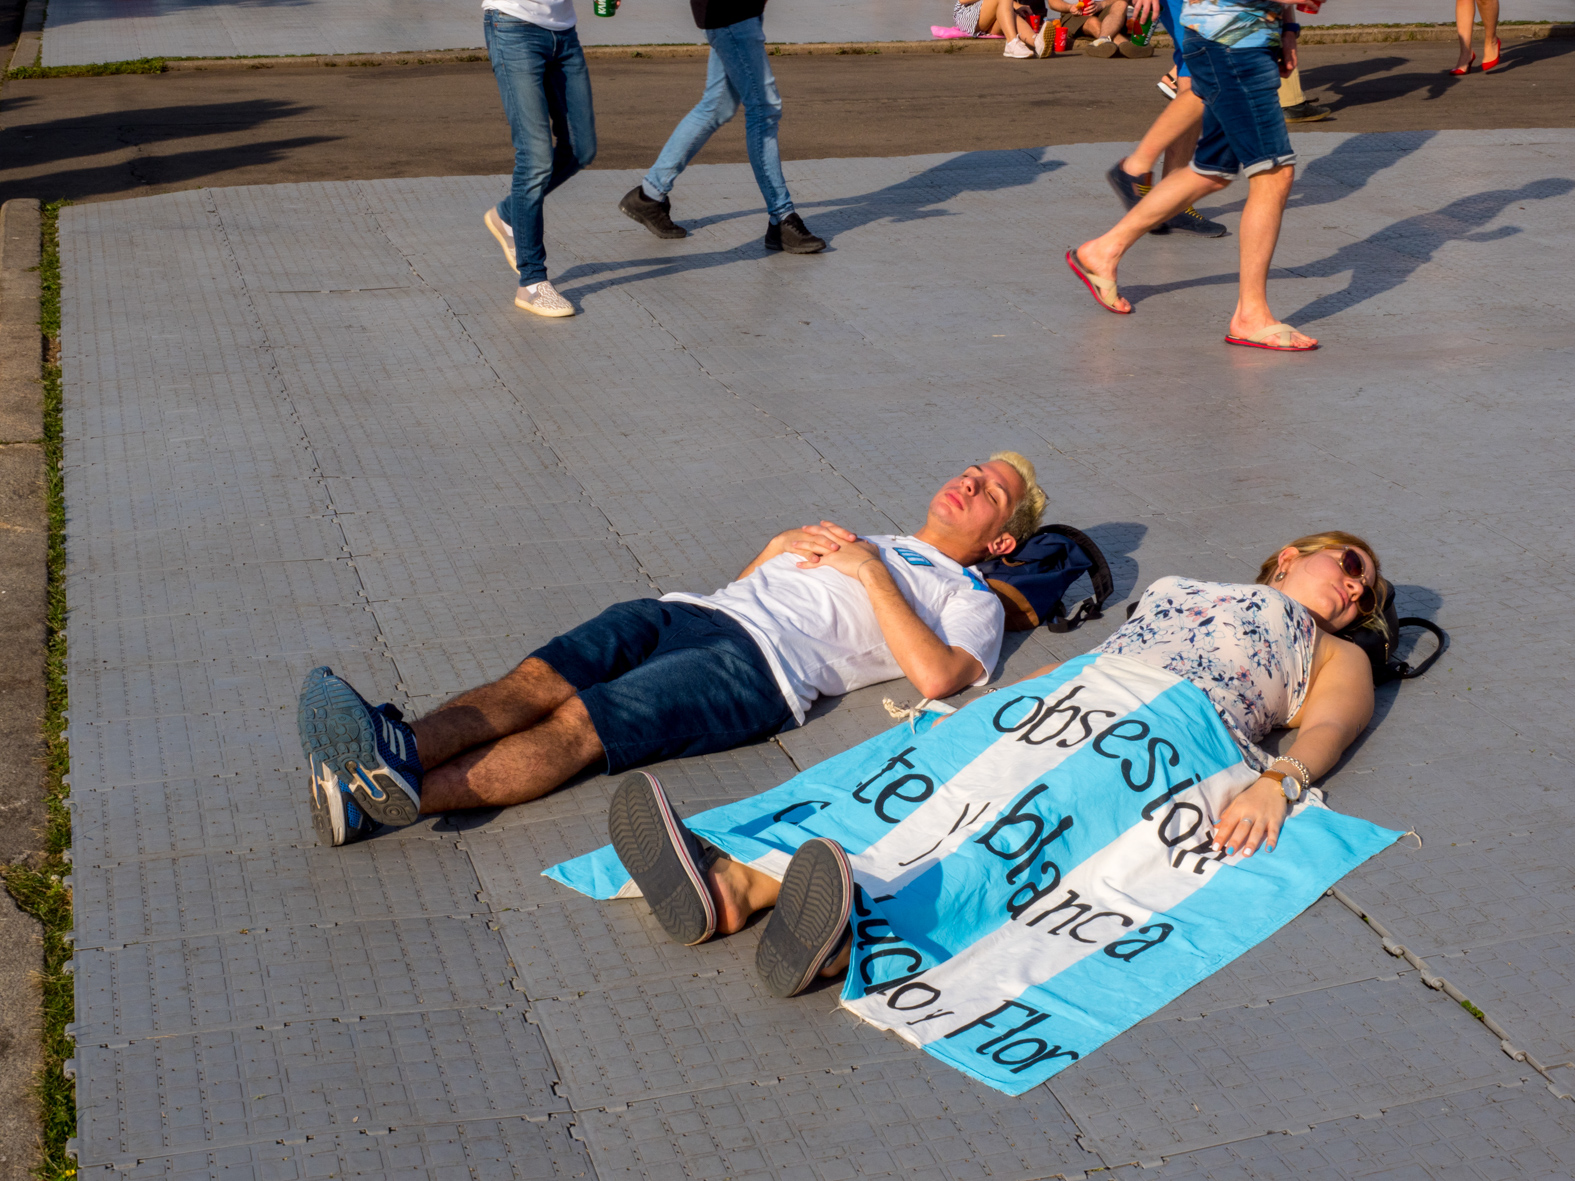 Argentinian fans rest on the gorund. The FIFA Fan Fest located at Vorobyovy Gory (Sparrow Hills) Moscow, has a venue Capacity of 25,000. The site provides a spectacular view down the hill, directly towards Luzhniki Stadium and Moscow City. The 21st FIFA World Cup football tournament took place in Russia in 2018. It was the first World Cup to be held in Eastern Europe and the eleventh time that it has been held in Europe. For the first time the tournament took place on two continents – Europe and Asia. All but two of the stadium venues were in European Russia.